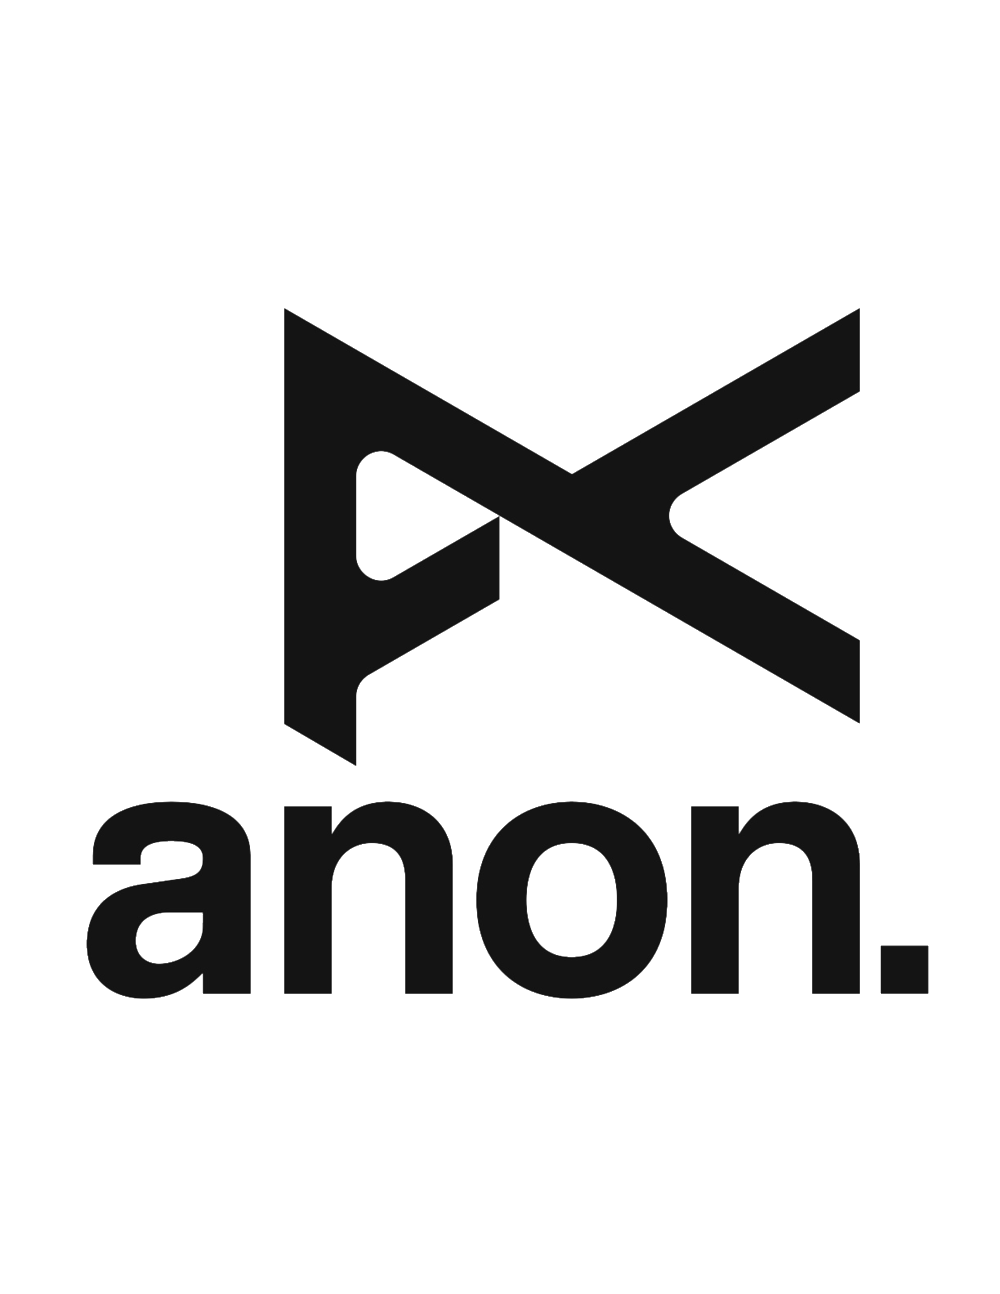 anon_logo.png